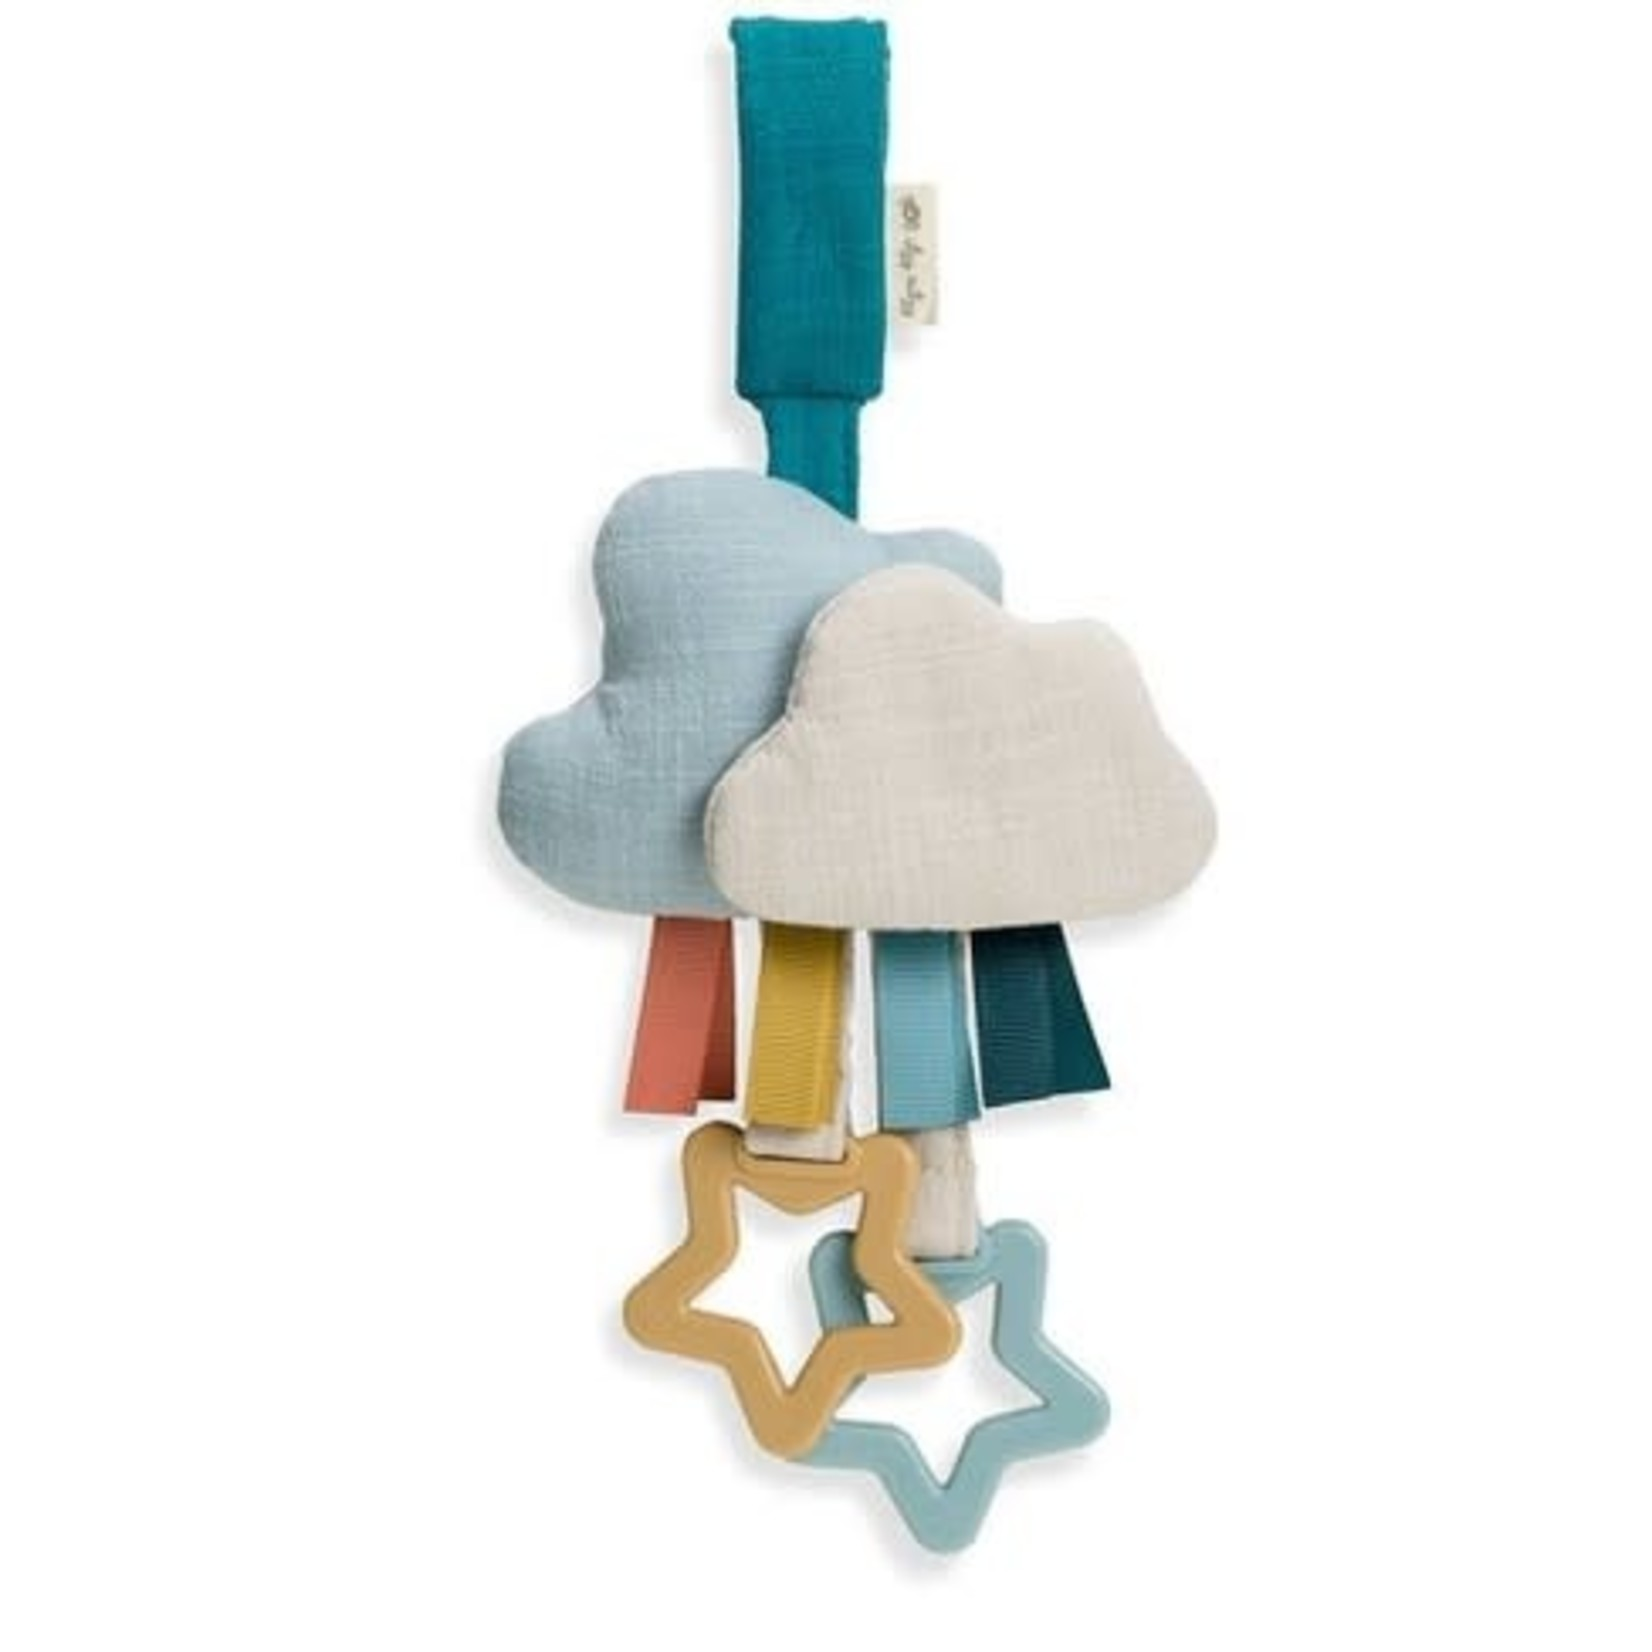 Itzy Ritzy Ritzy Jingle - Cloud Attachable Travel Toy